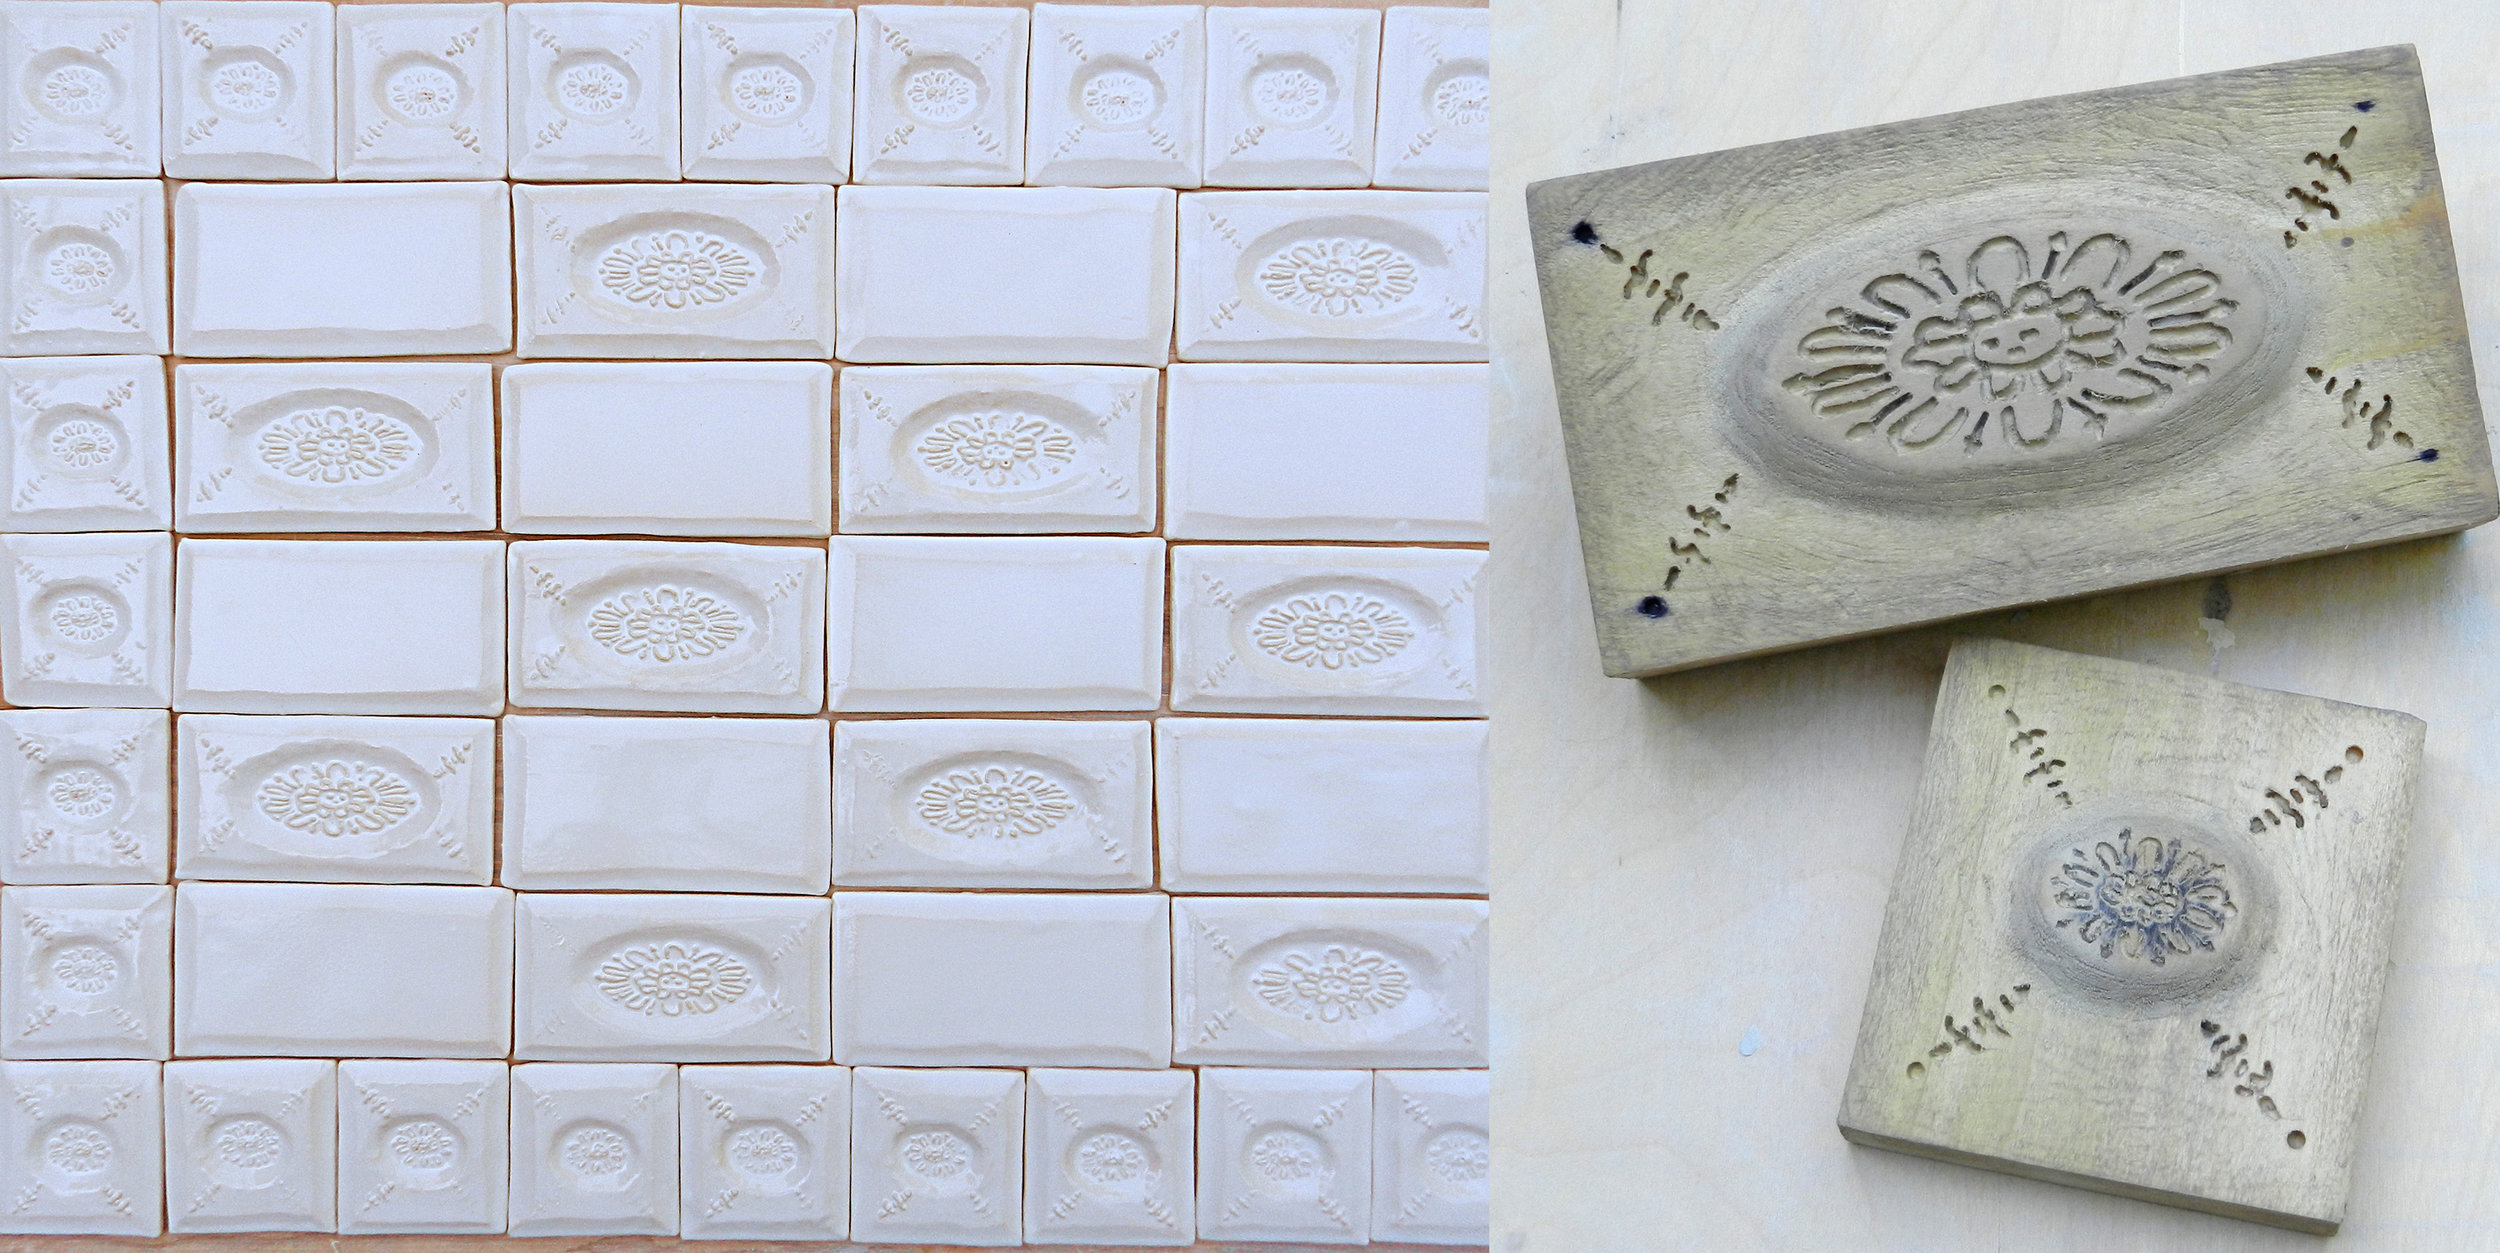 Loose tiles pictured in the studio (left), hand-carved wood molds used to create the Concordia decoratives (right).